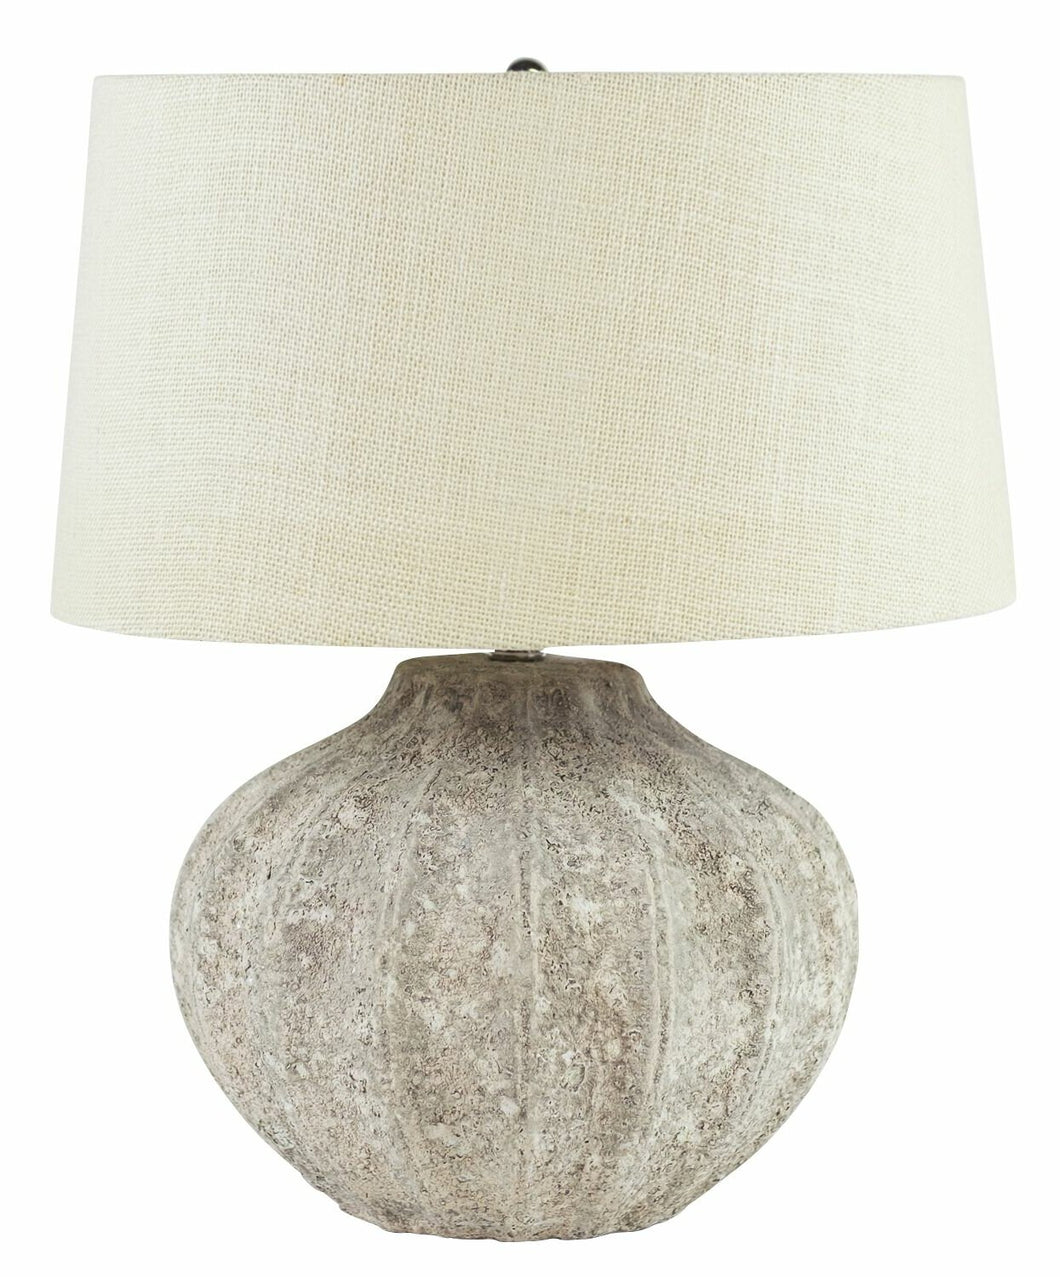 Cement Bowl table lamp